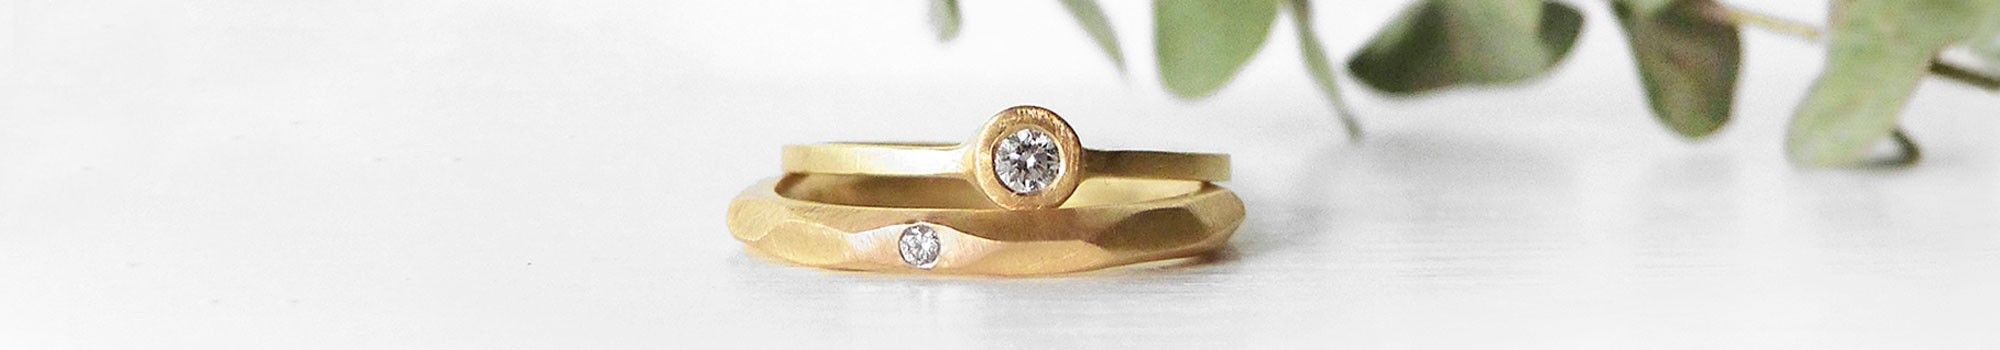 Handmade gold wedding rings and bands